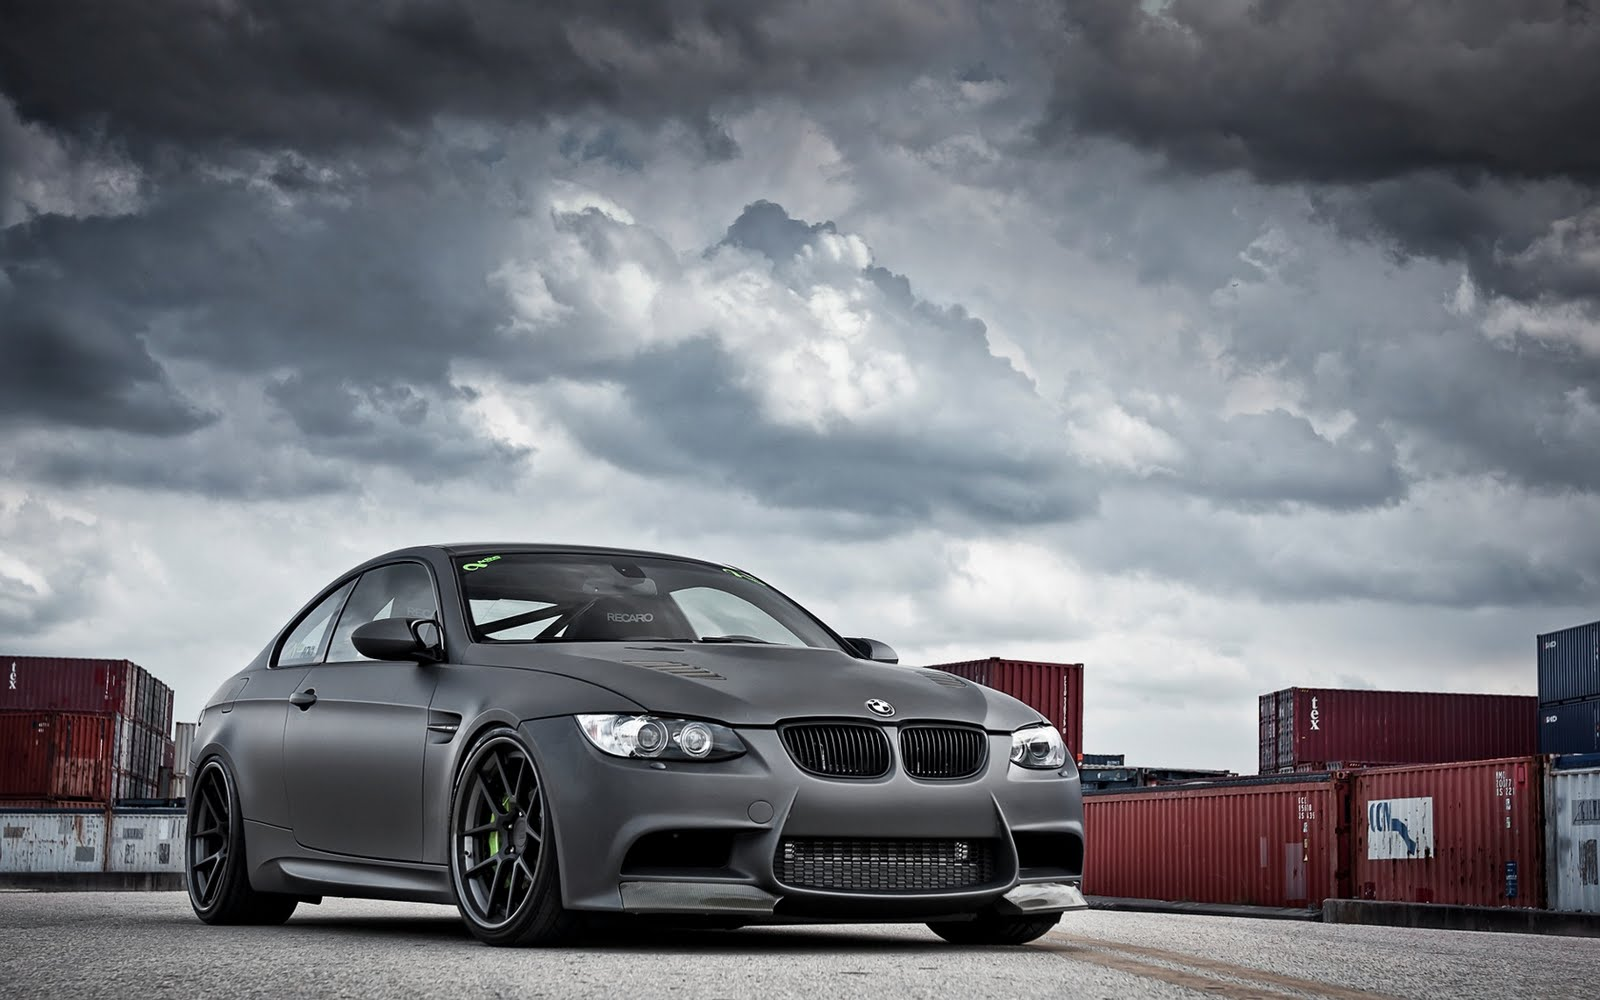 bmw m3 hd wallpaper - wallpapersafari